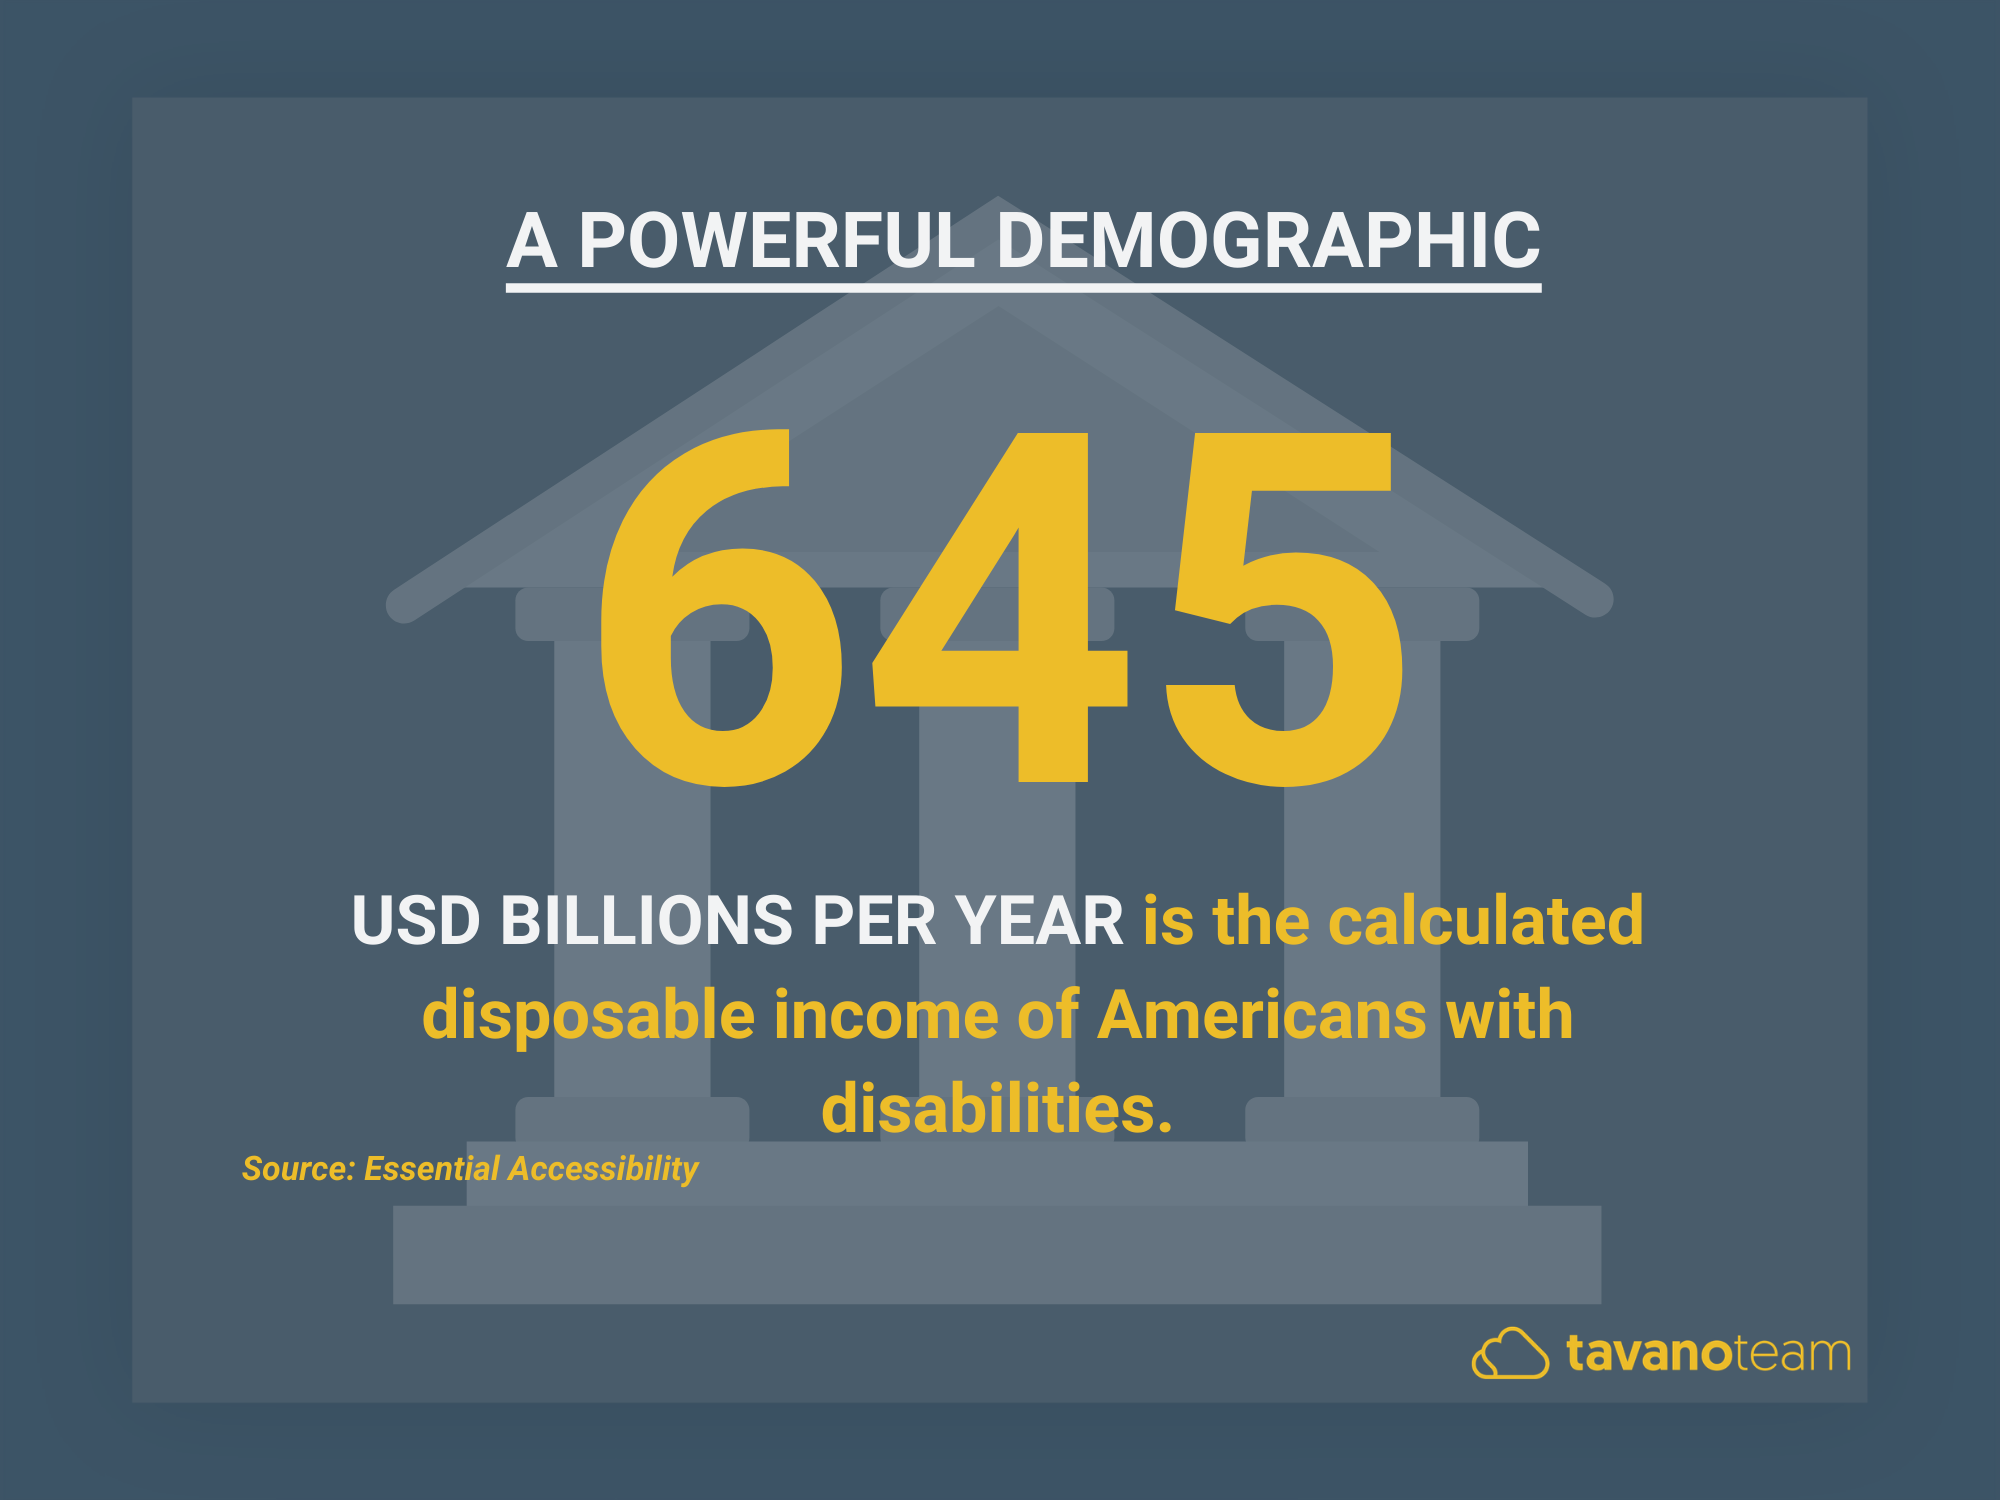 web-accessibility-tavano-team-disposable-income-americans-with-disabilities